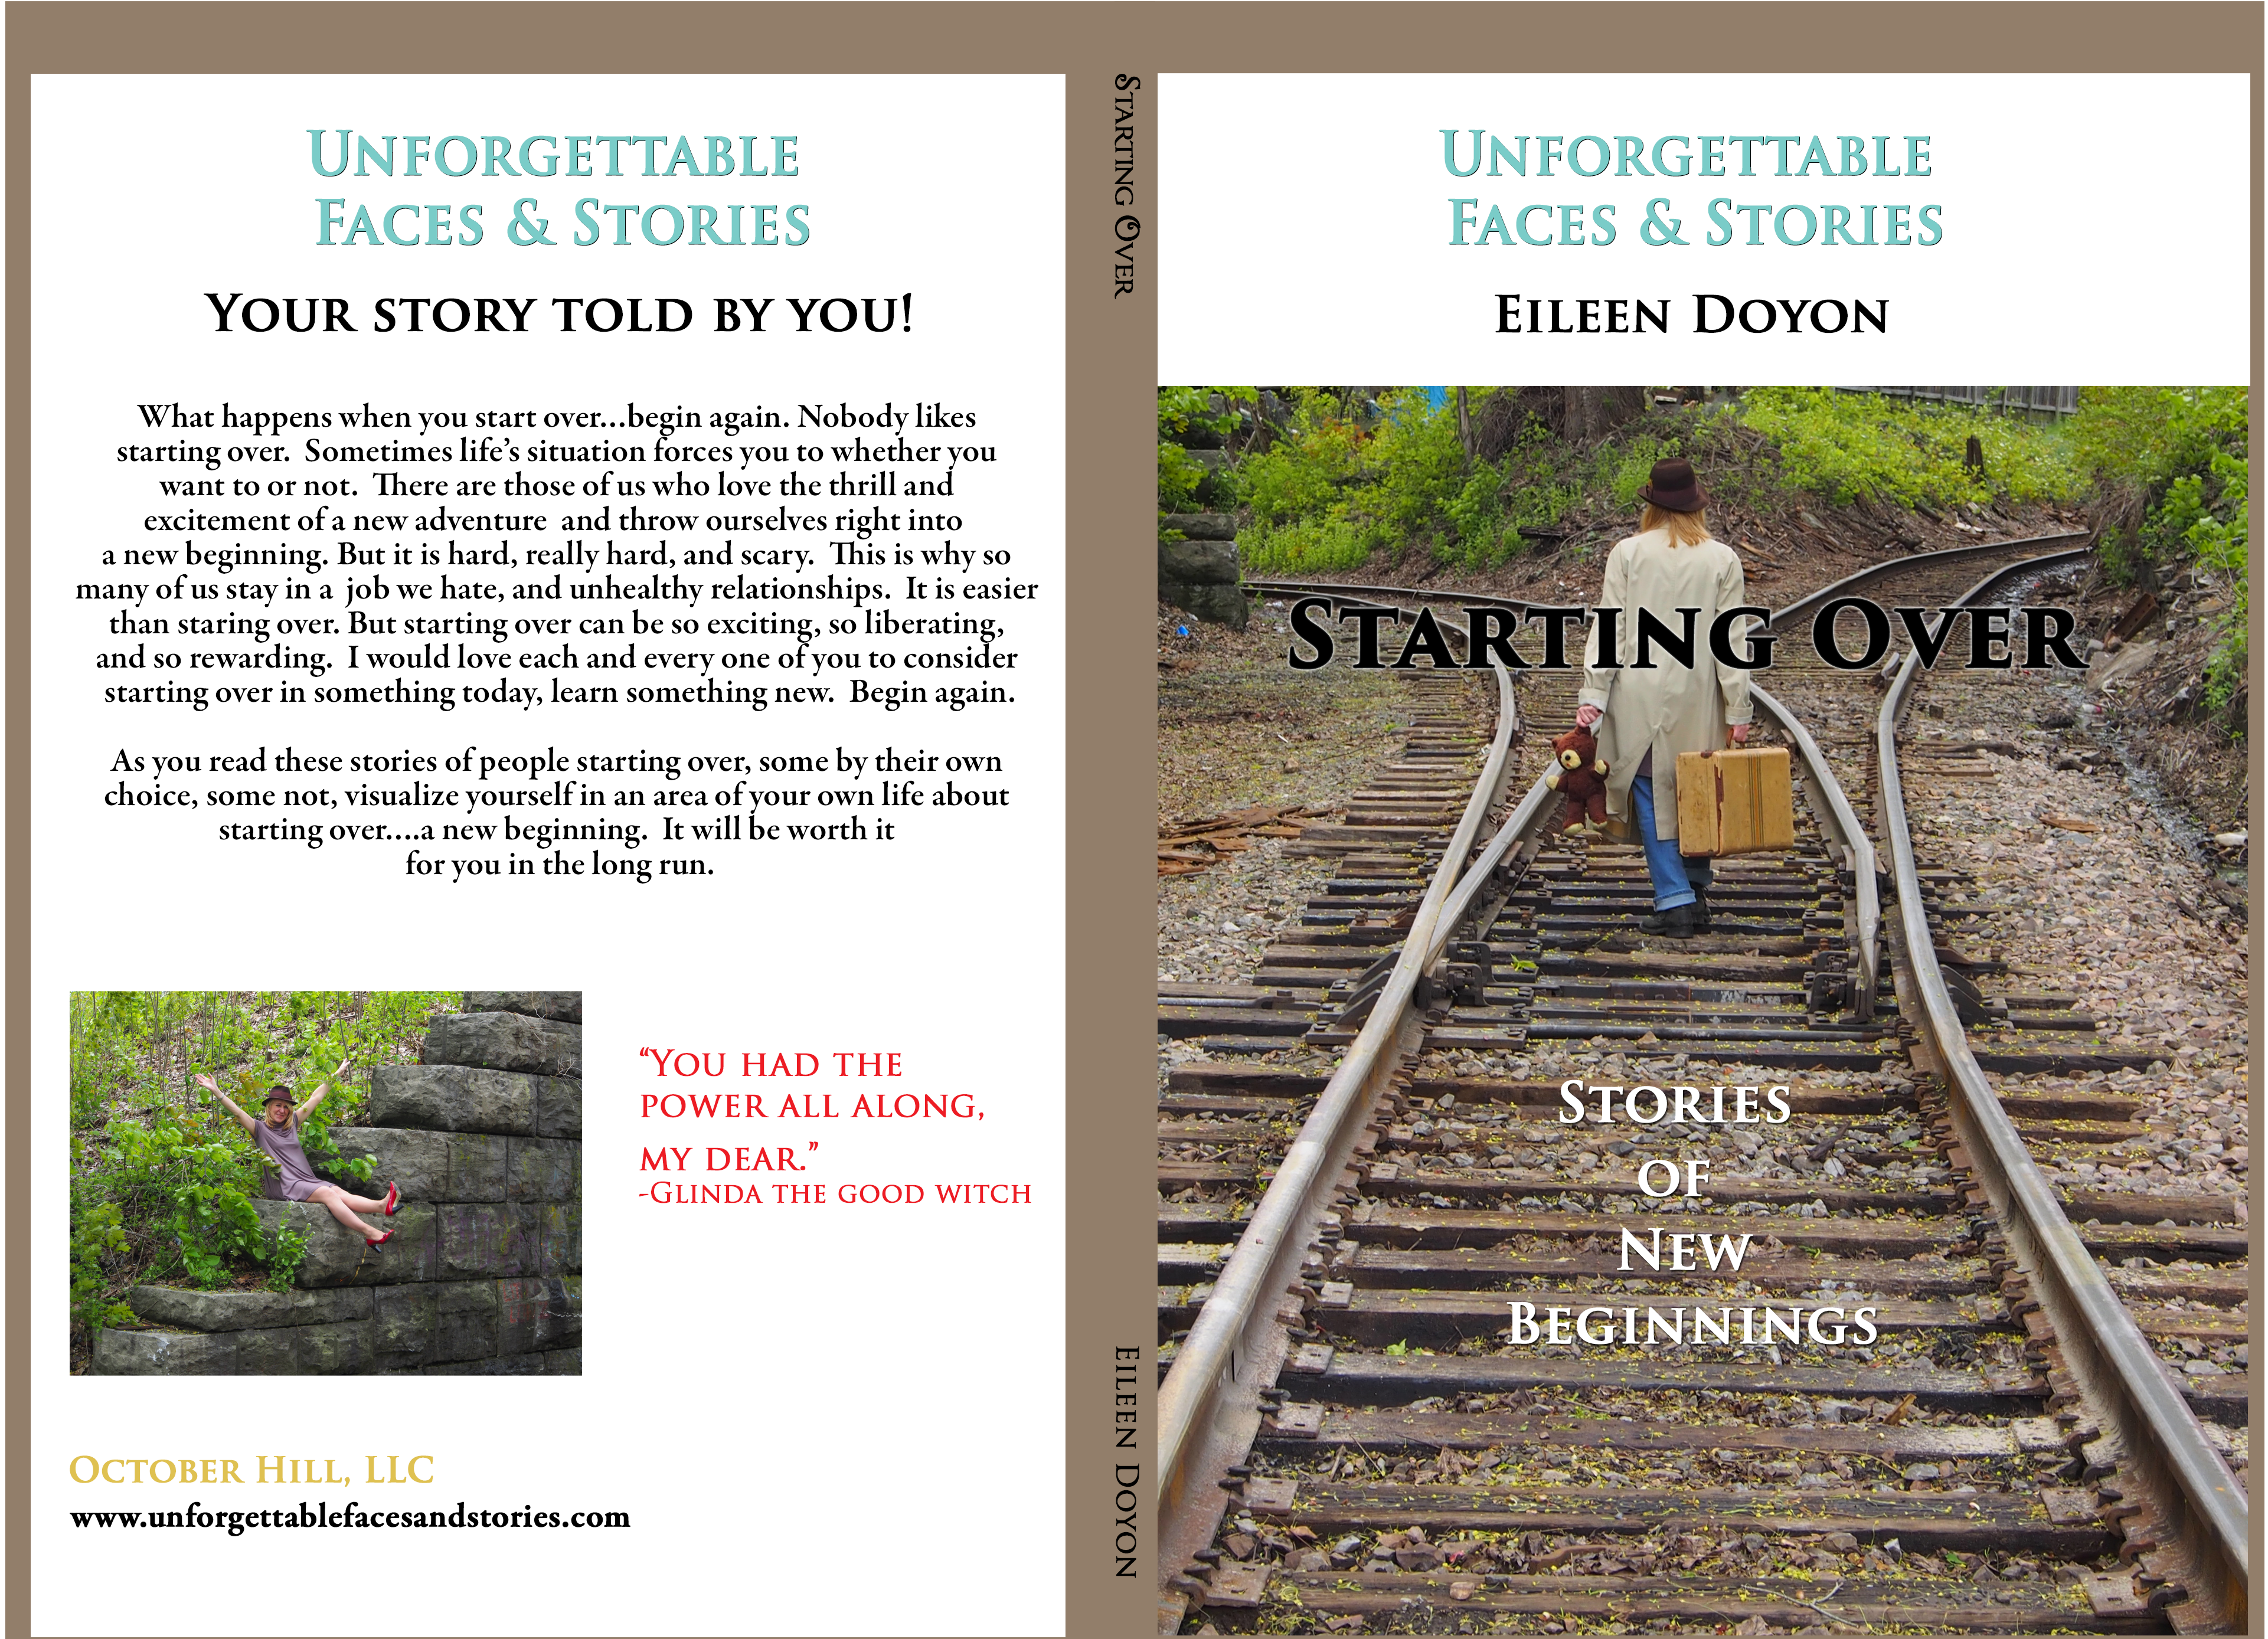 Starting Over: Stories of New Beginnings Full Cover